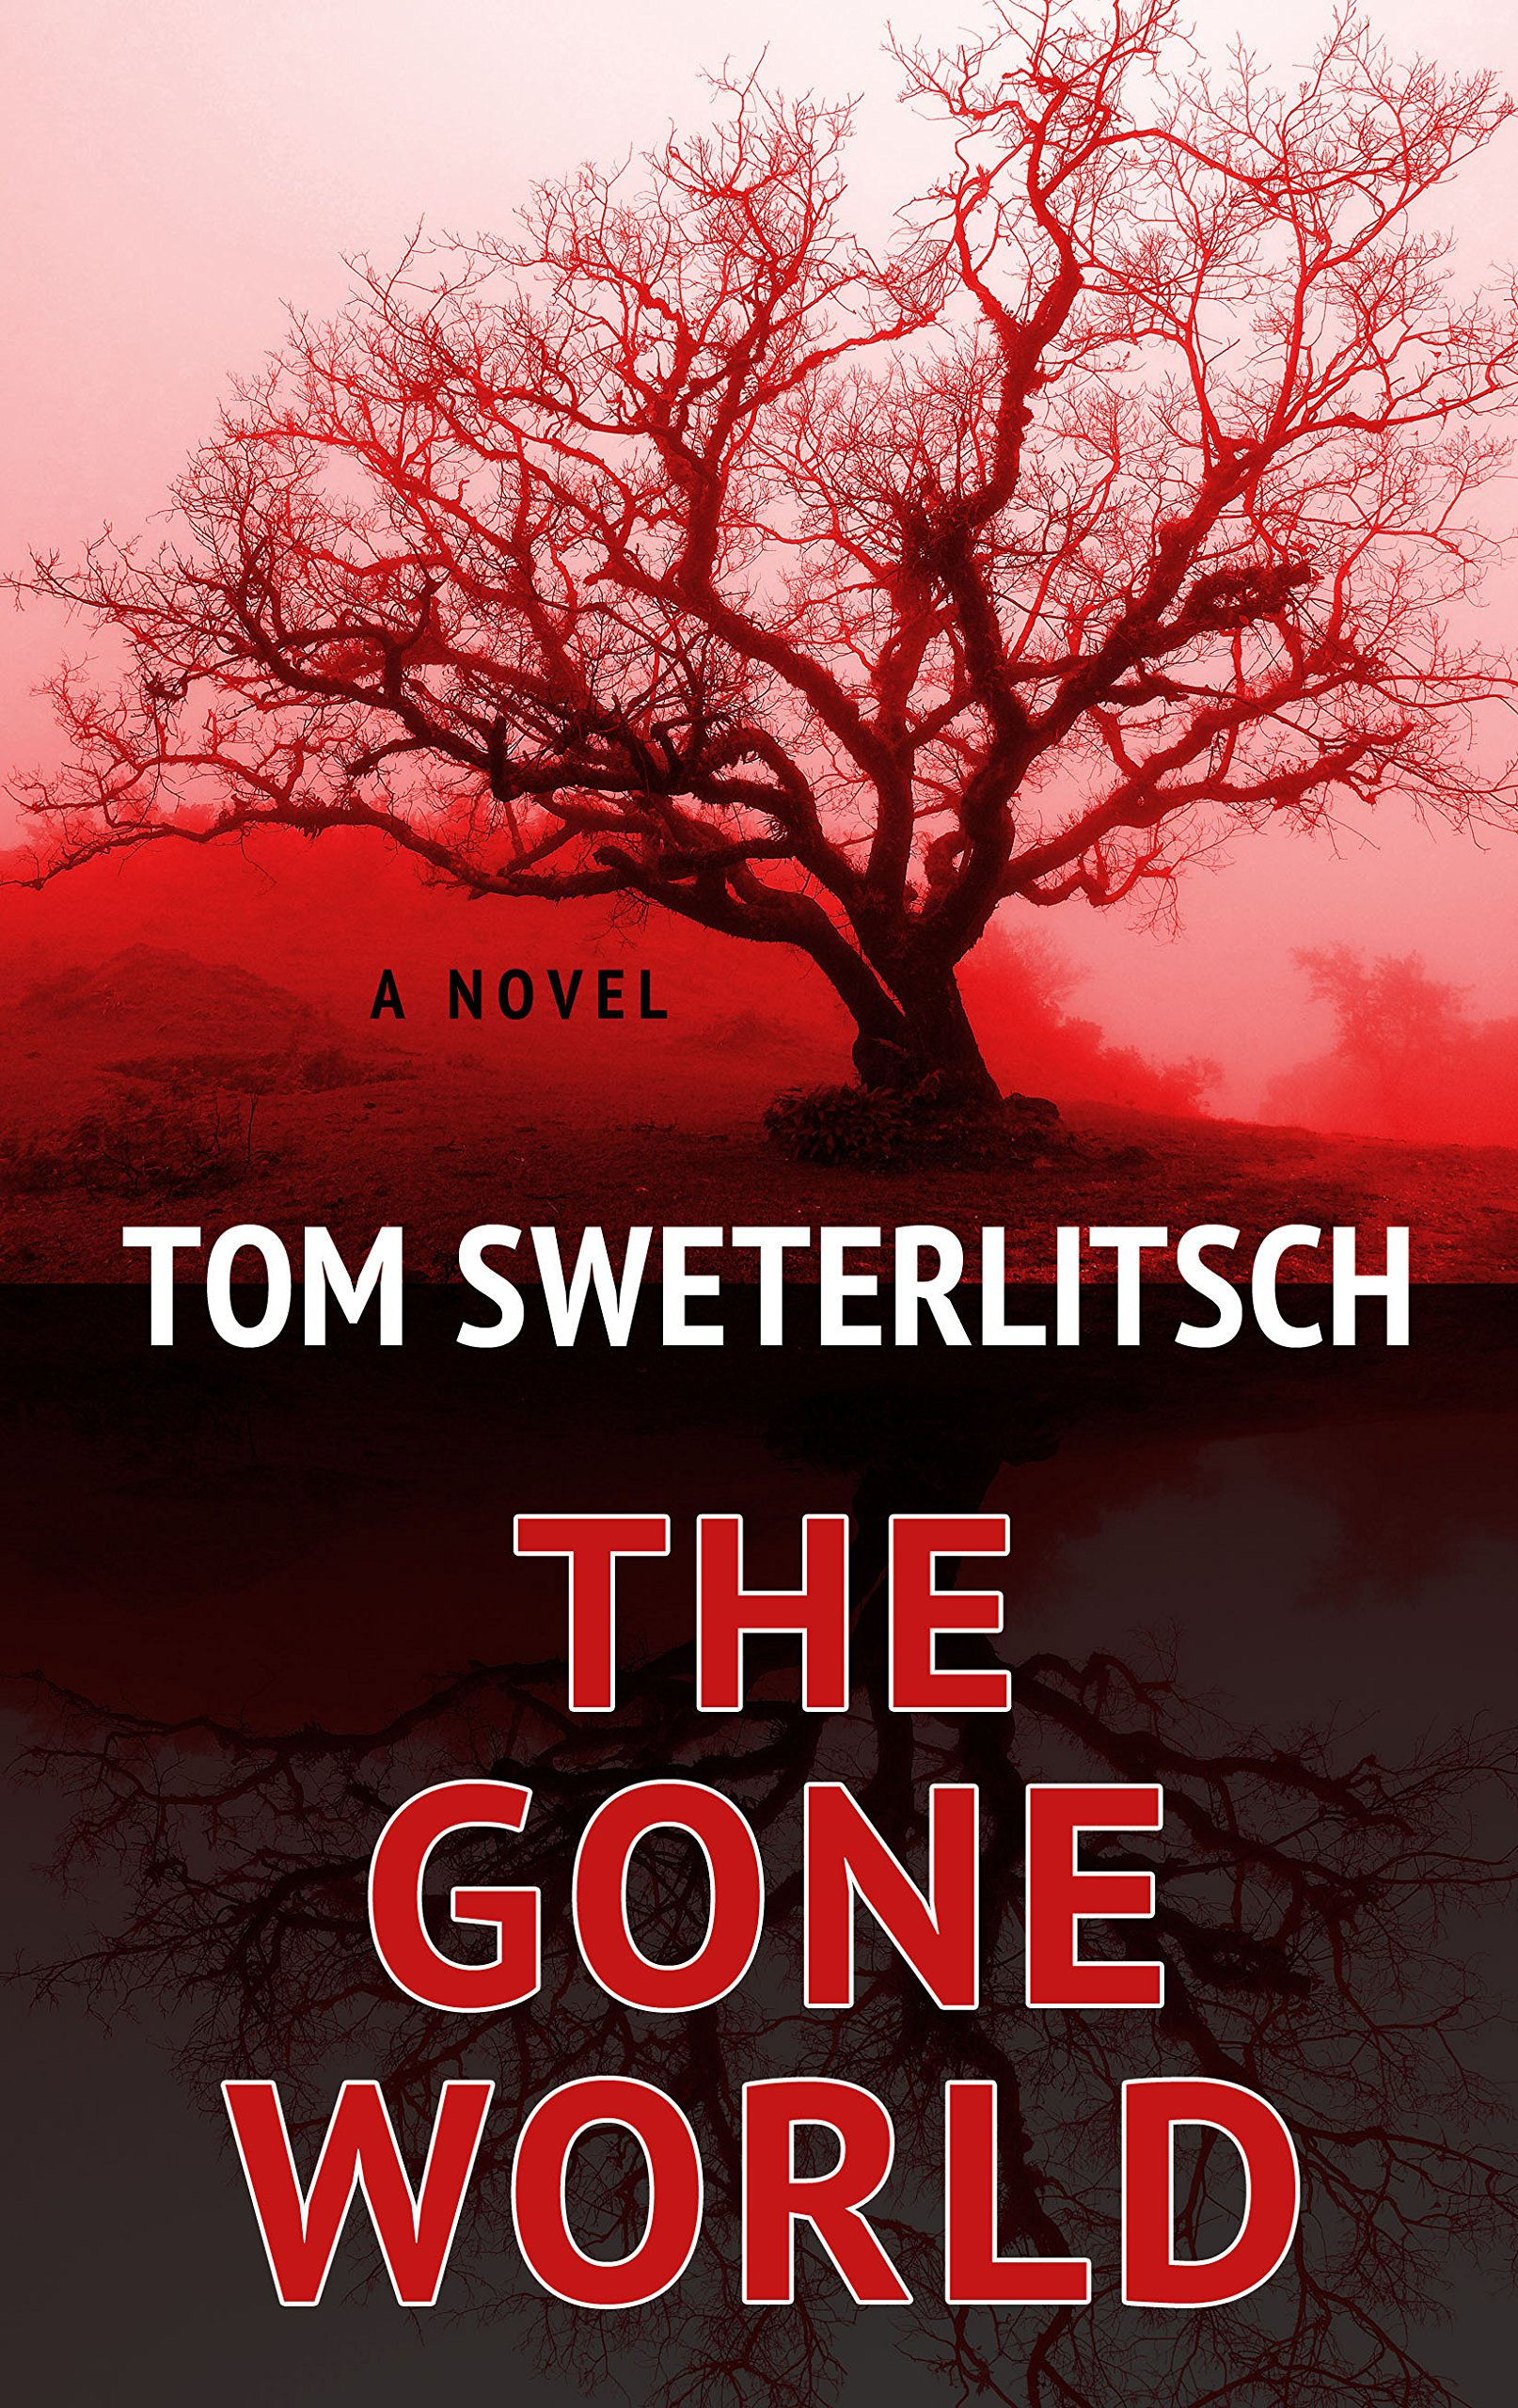 Buy THE GONE WORLD by Tom Sweterlitsch